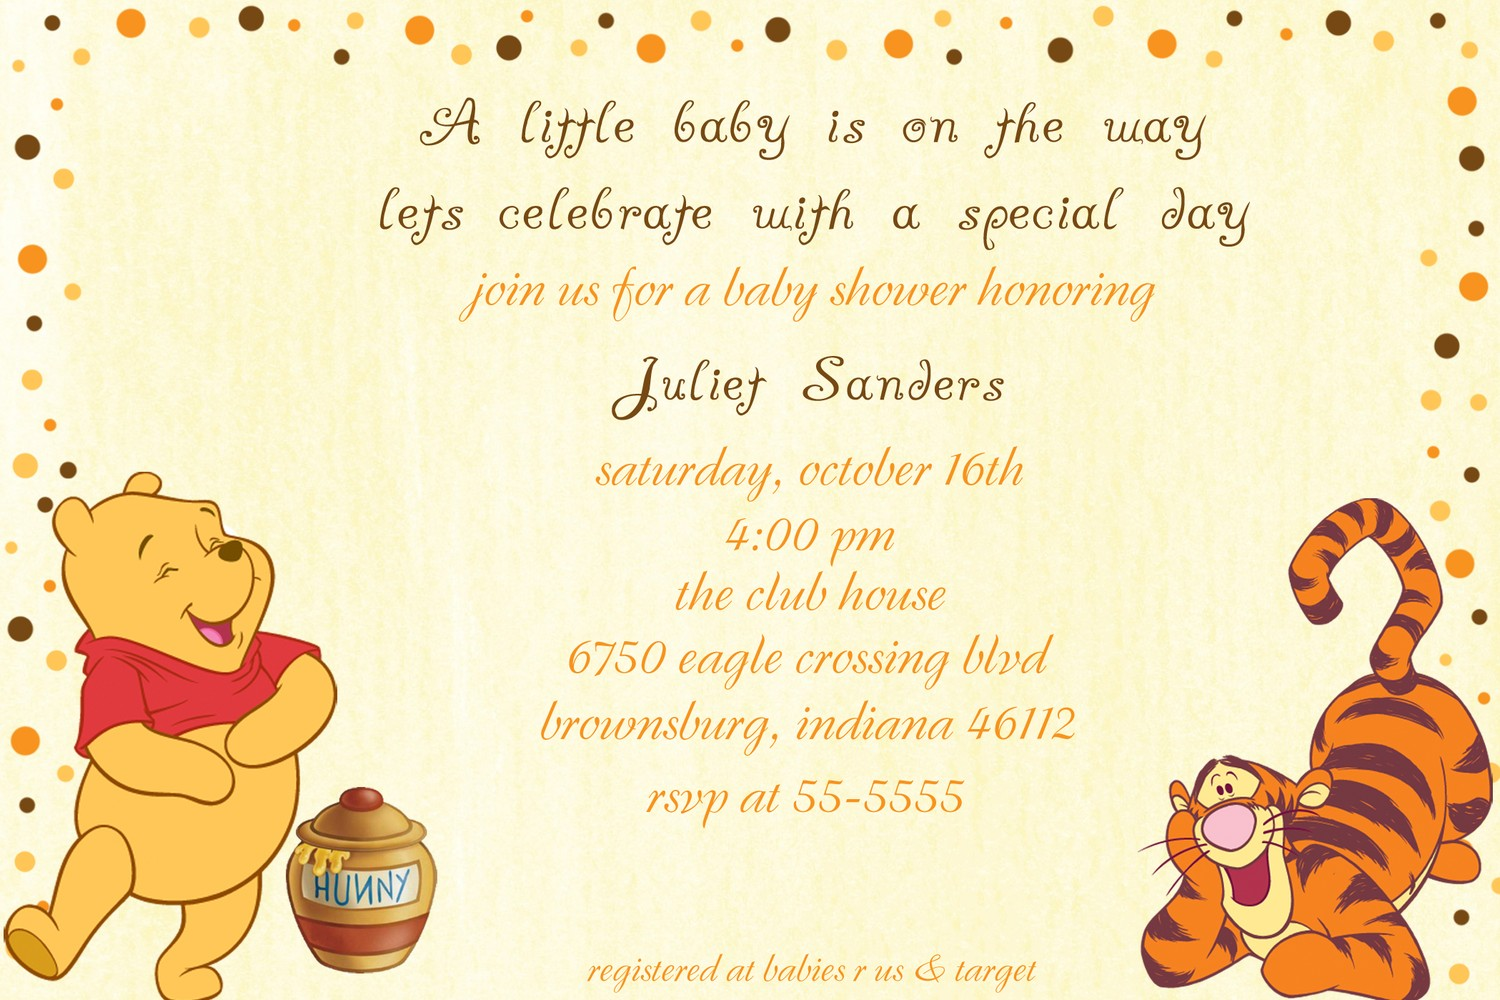 free printable winnie the pooh first birthday invitations ; Excellent-Winnie-The-Pooh-Baby-Shower-Invitations-To-Create-Your-Own-How-To-Make-A-Baby-Shower-Invitation